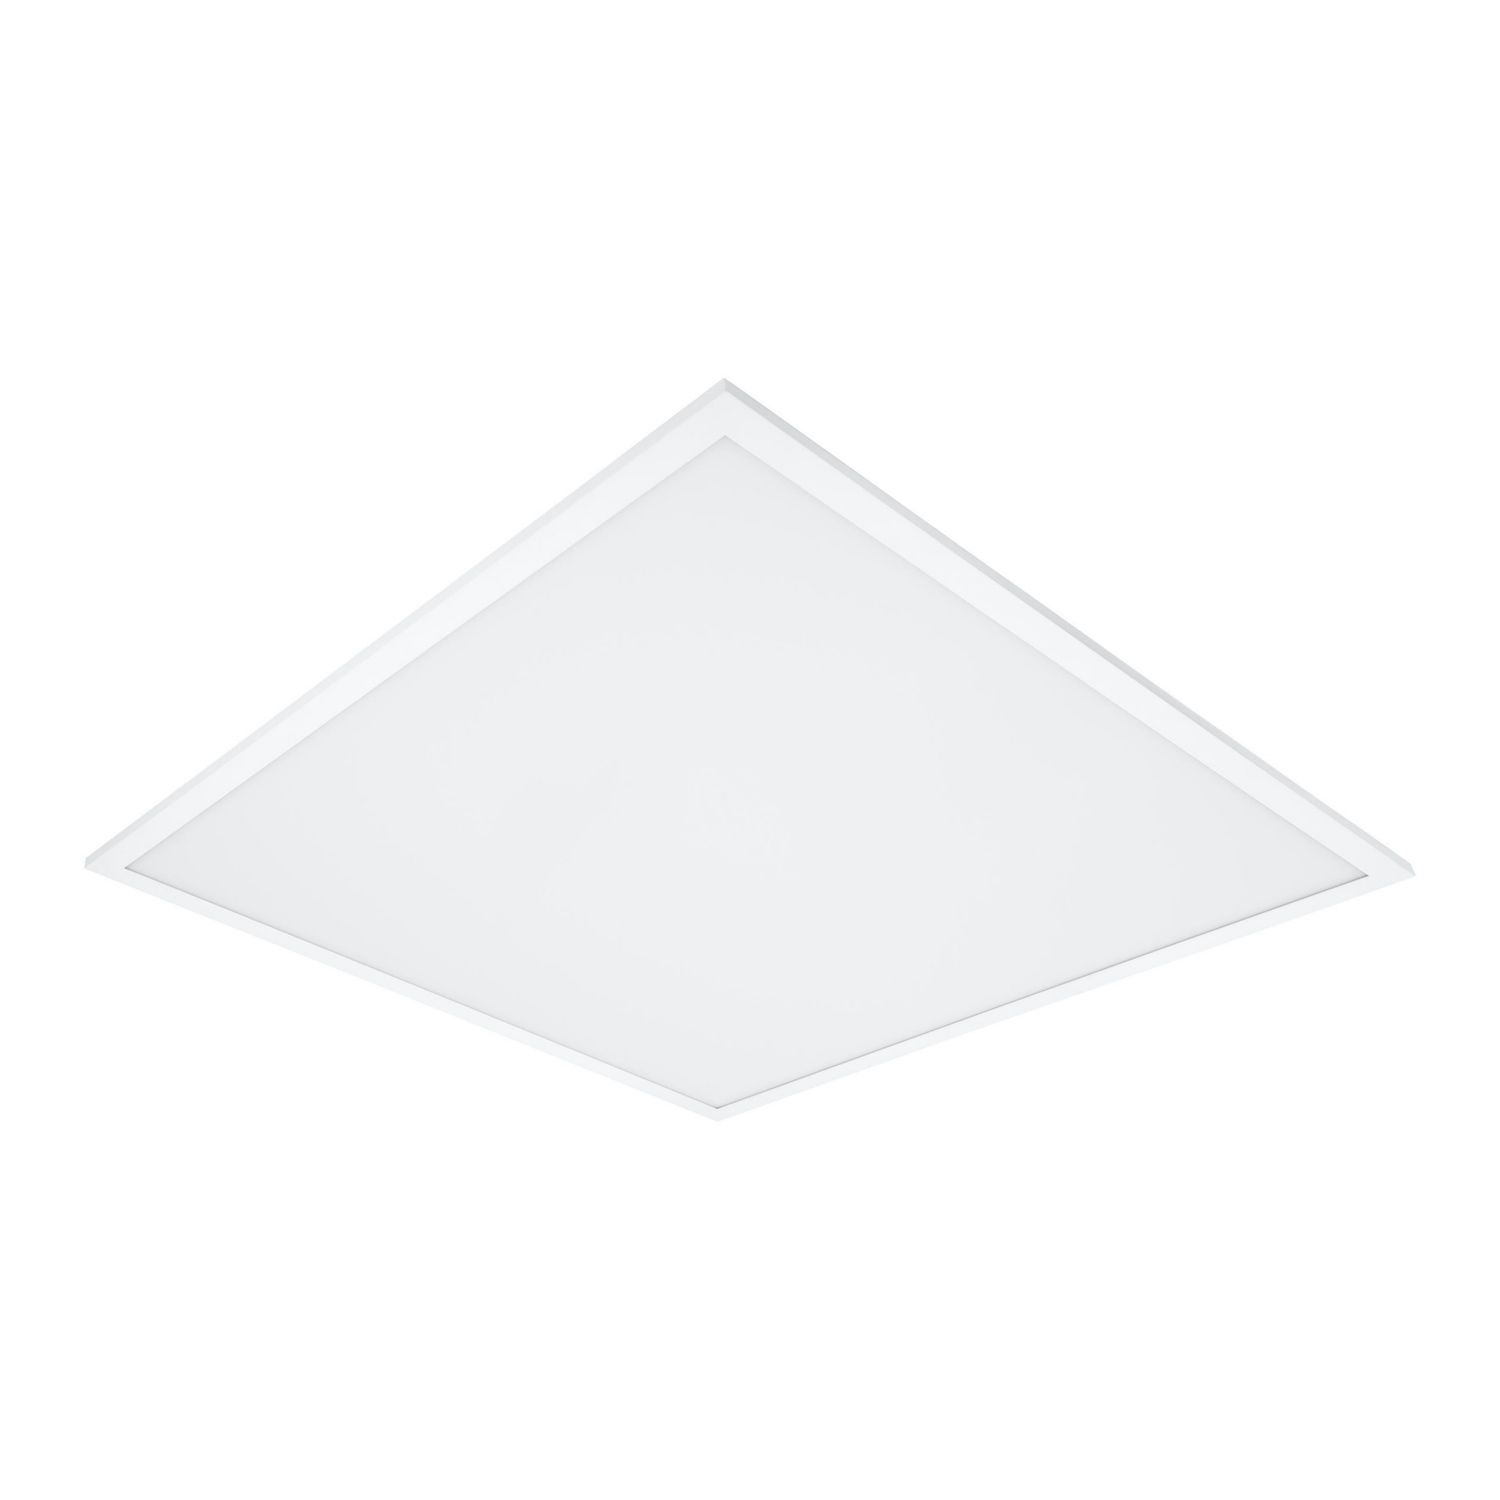 Ledvance LED panel Performance 60x60cm 4000K 33W UGR <19 | Dali dimbar - kald hvit - erstatter 4x18W